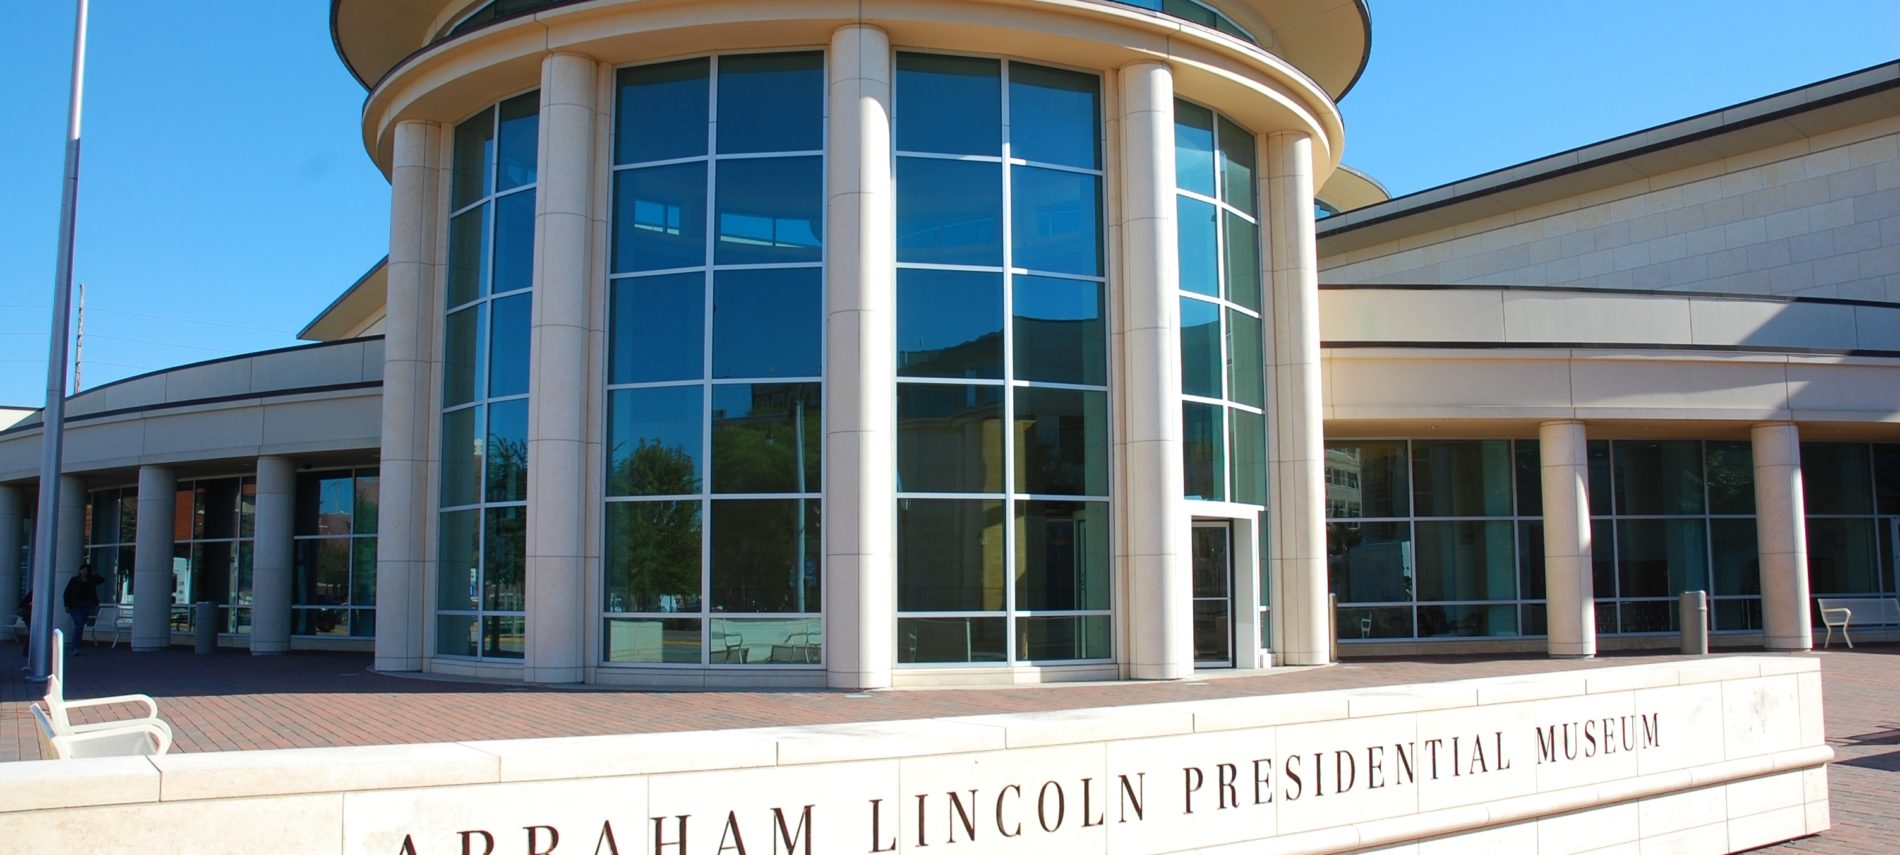 Circular building of Abraham Lincoln Museum, American flag on pole by bench.